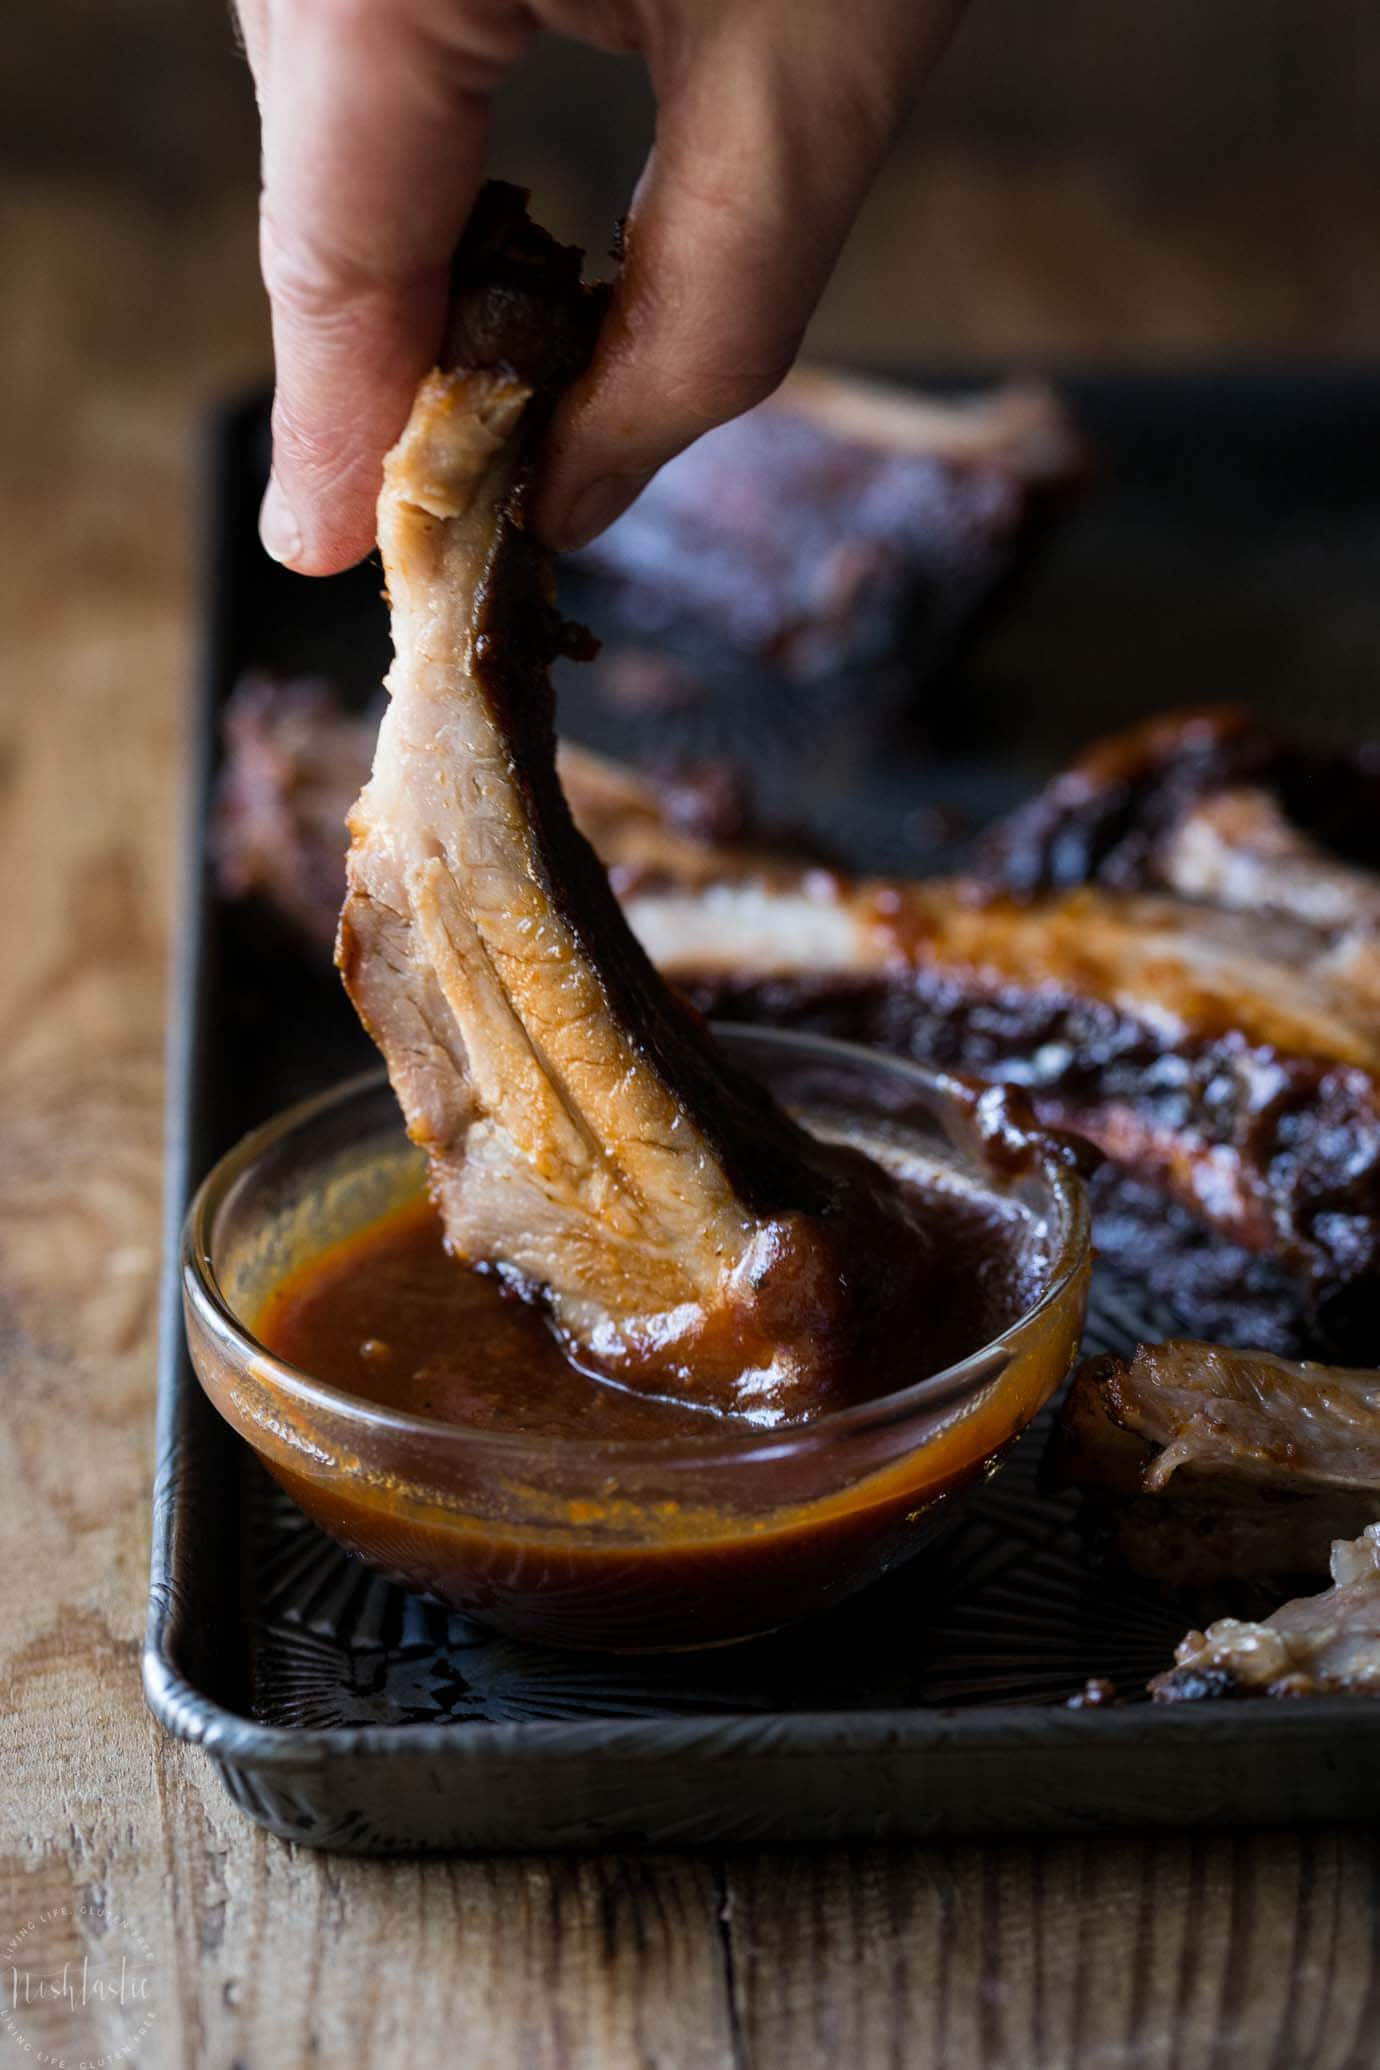 Slow Cooker Baby Back Ribs that are fall off the bone tender, delicious with a Memphis style rub and easy homemade BBQ sticky sauce! gluten free too!